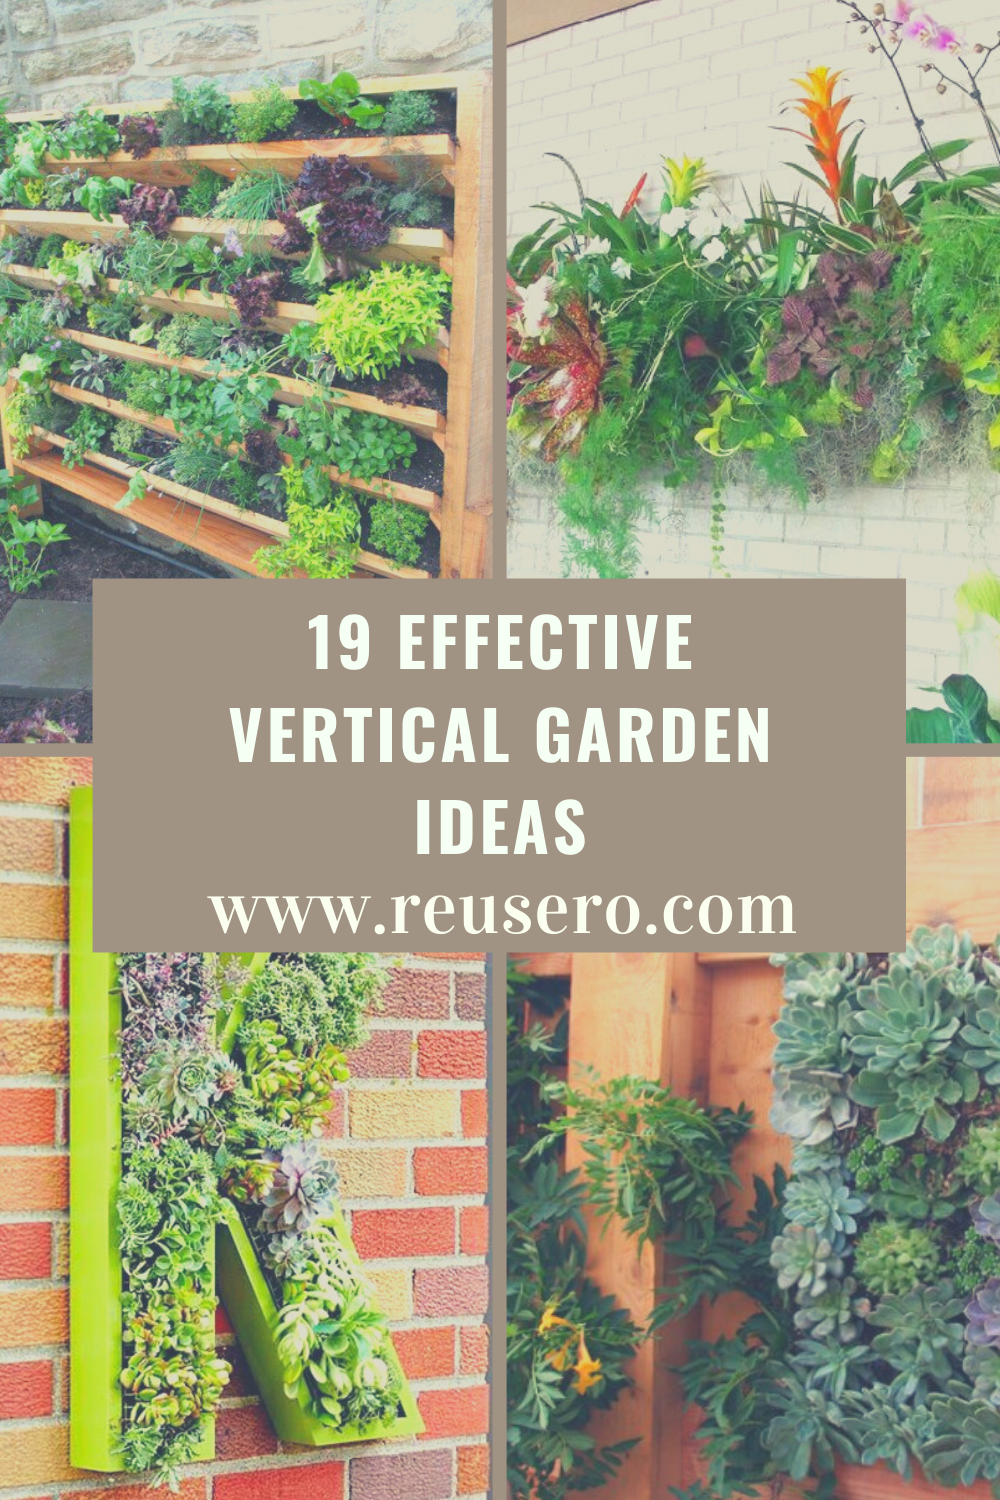 19 Awesome Vertical Gardening Ideas For Your Garden Reusero Vertical Garden Garden Diy Garden